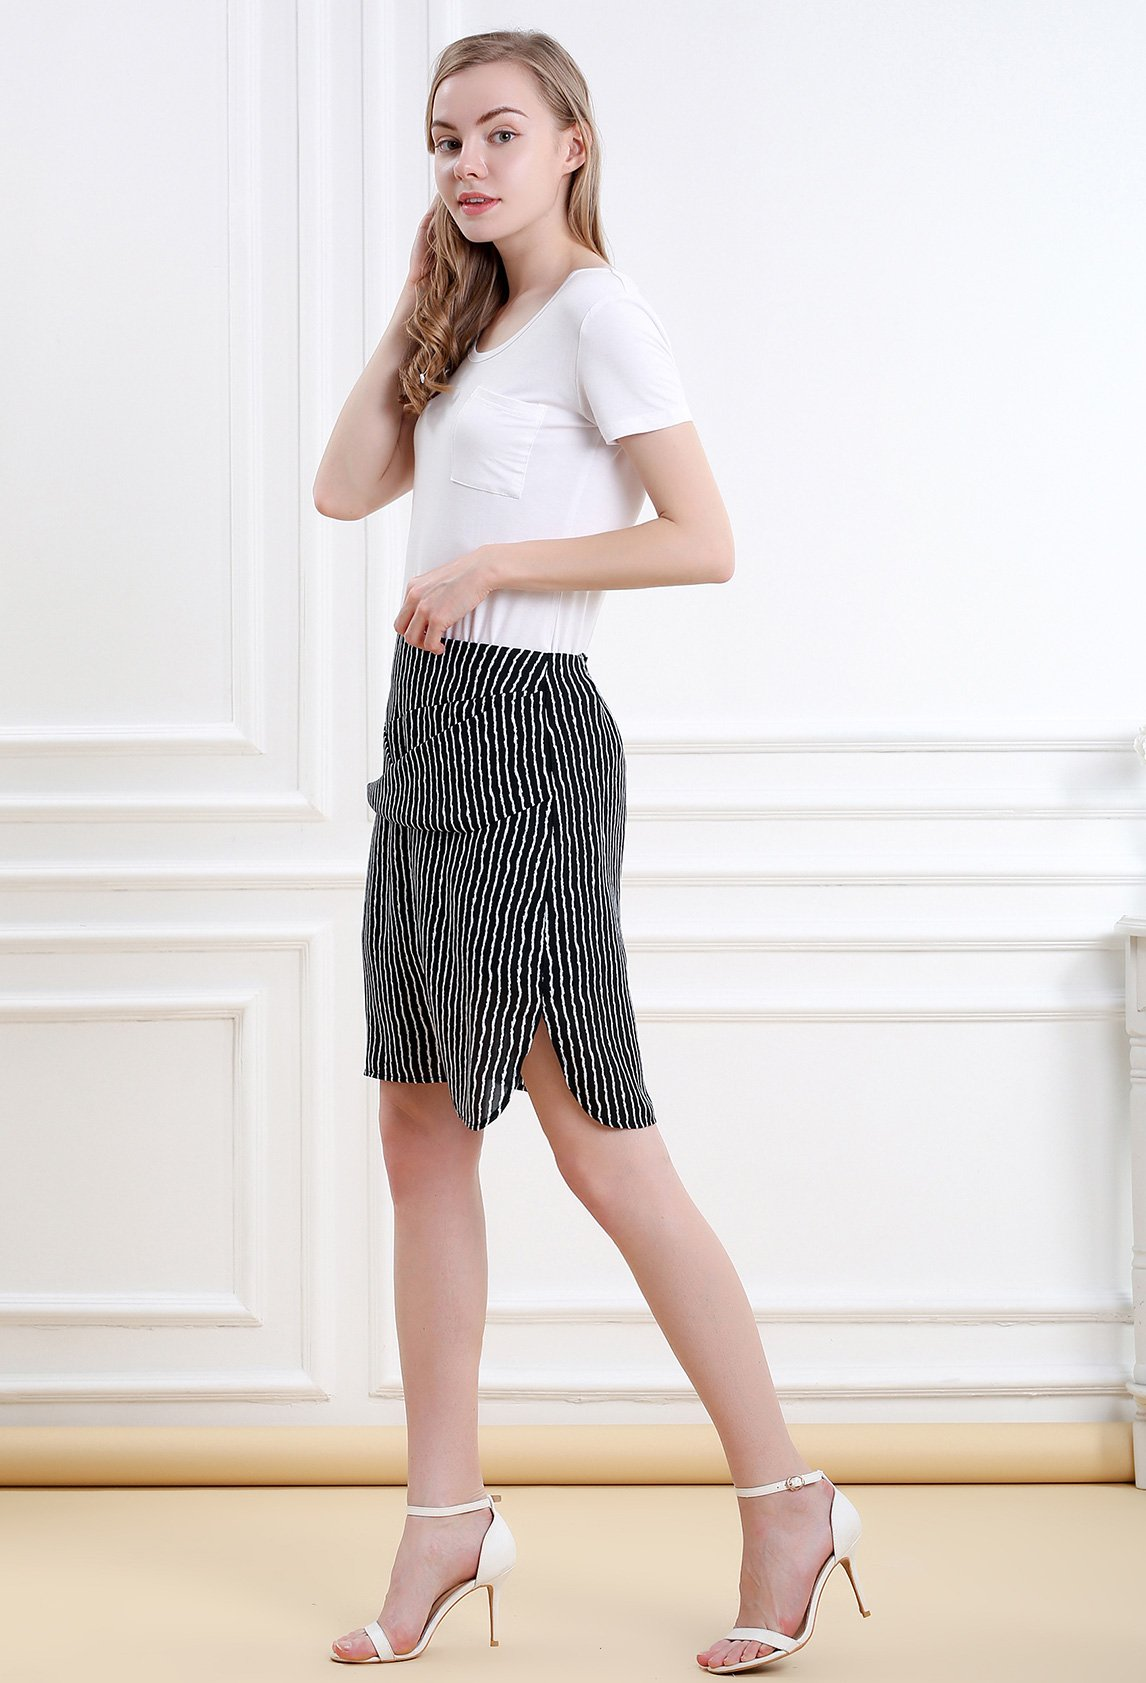 Women Striped Split Mini Skirt Crossed Front Casual A-line Skirt with Zipper XL by Vero Viva (Image #3)